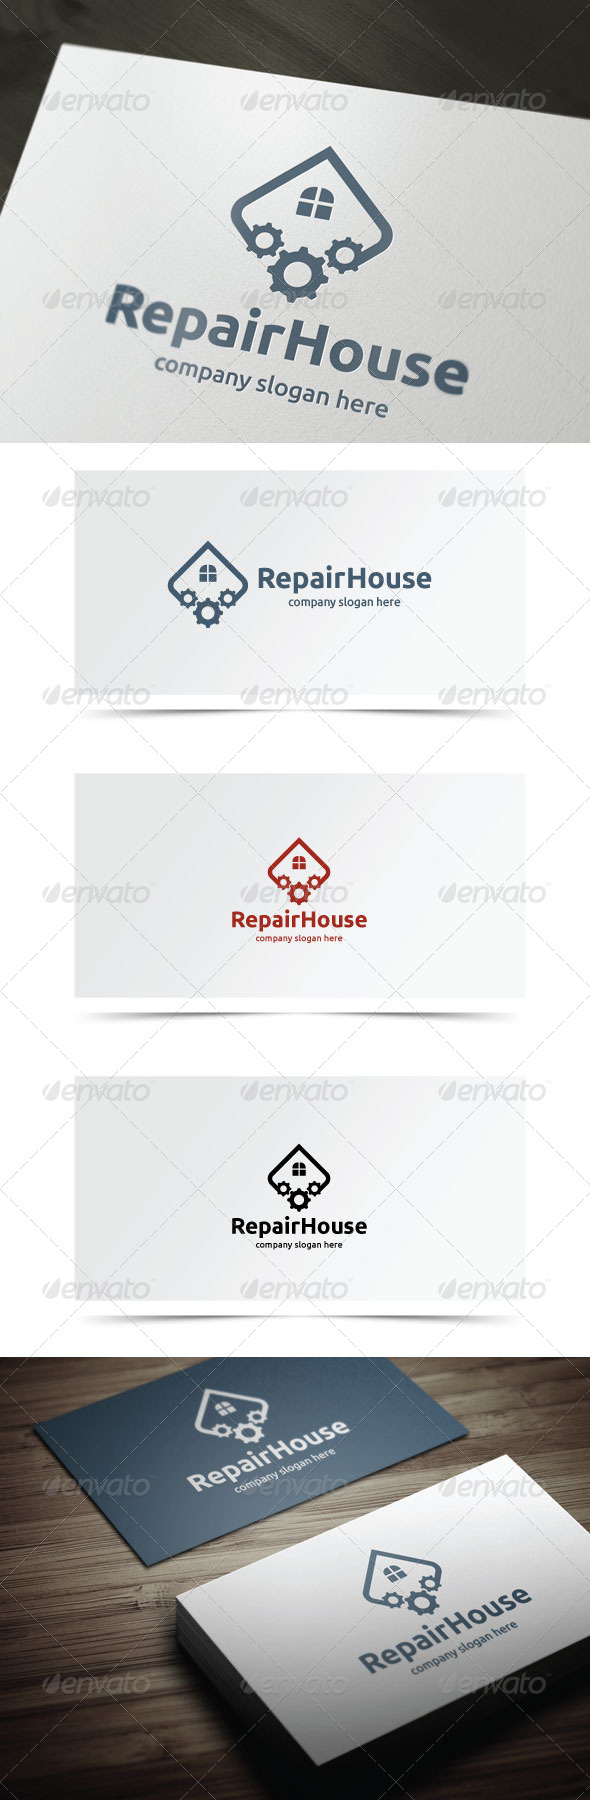 GraphicRiver Repair House 7004573